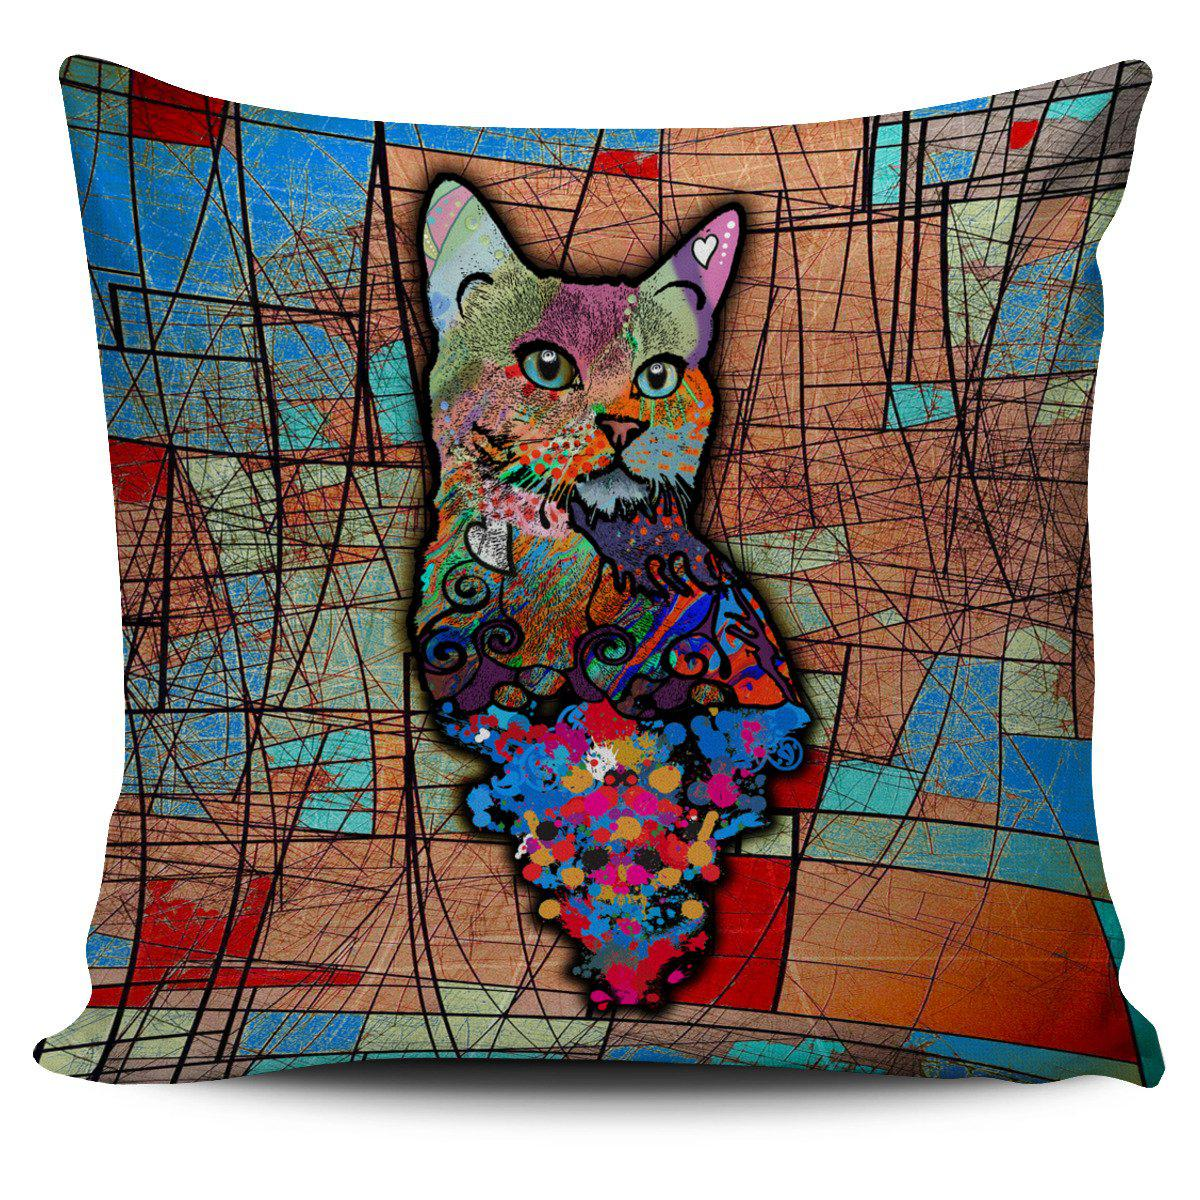 Shopeholic:Surreal Cat Pillow Cover